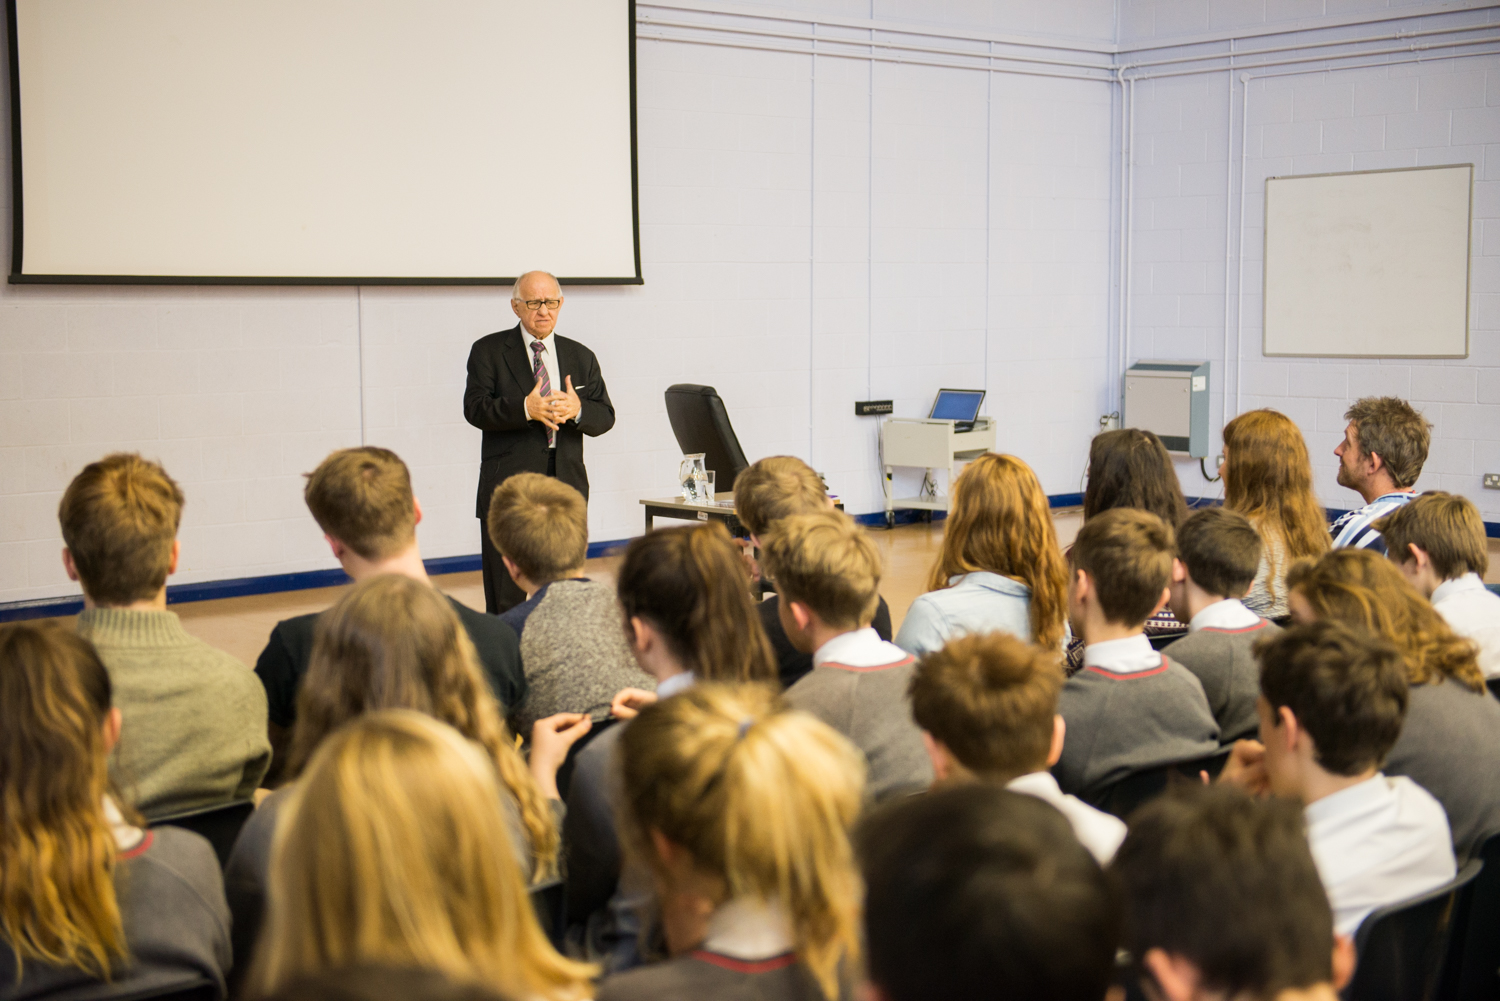 Holocaust survivor Zigi Shipper speaks to pupils at Malmesbury School about his experiences